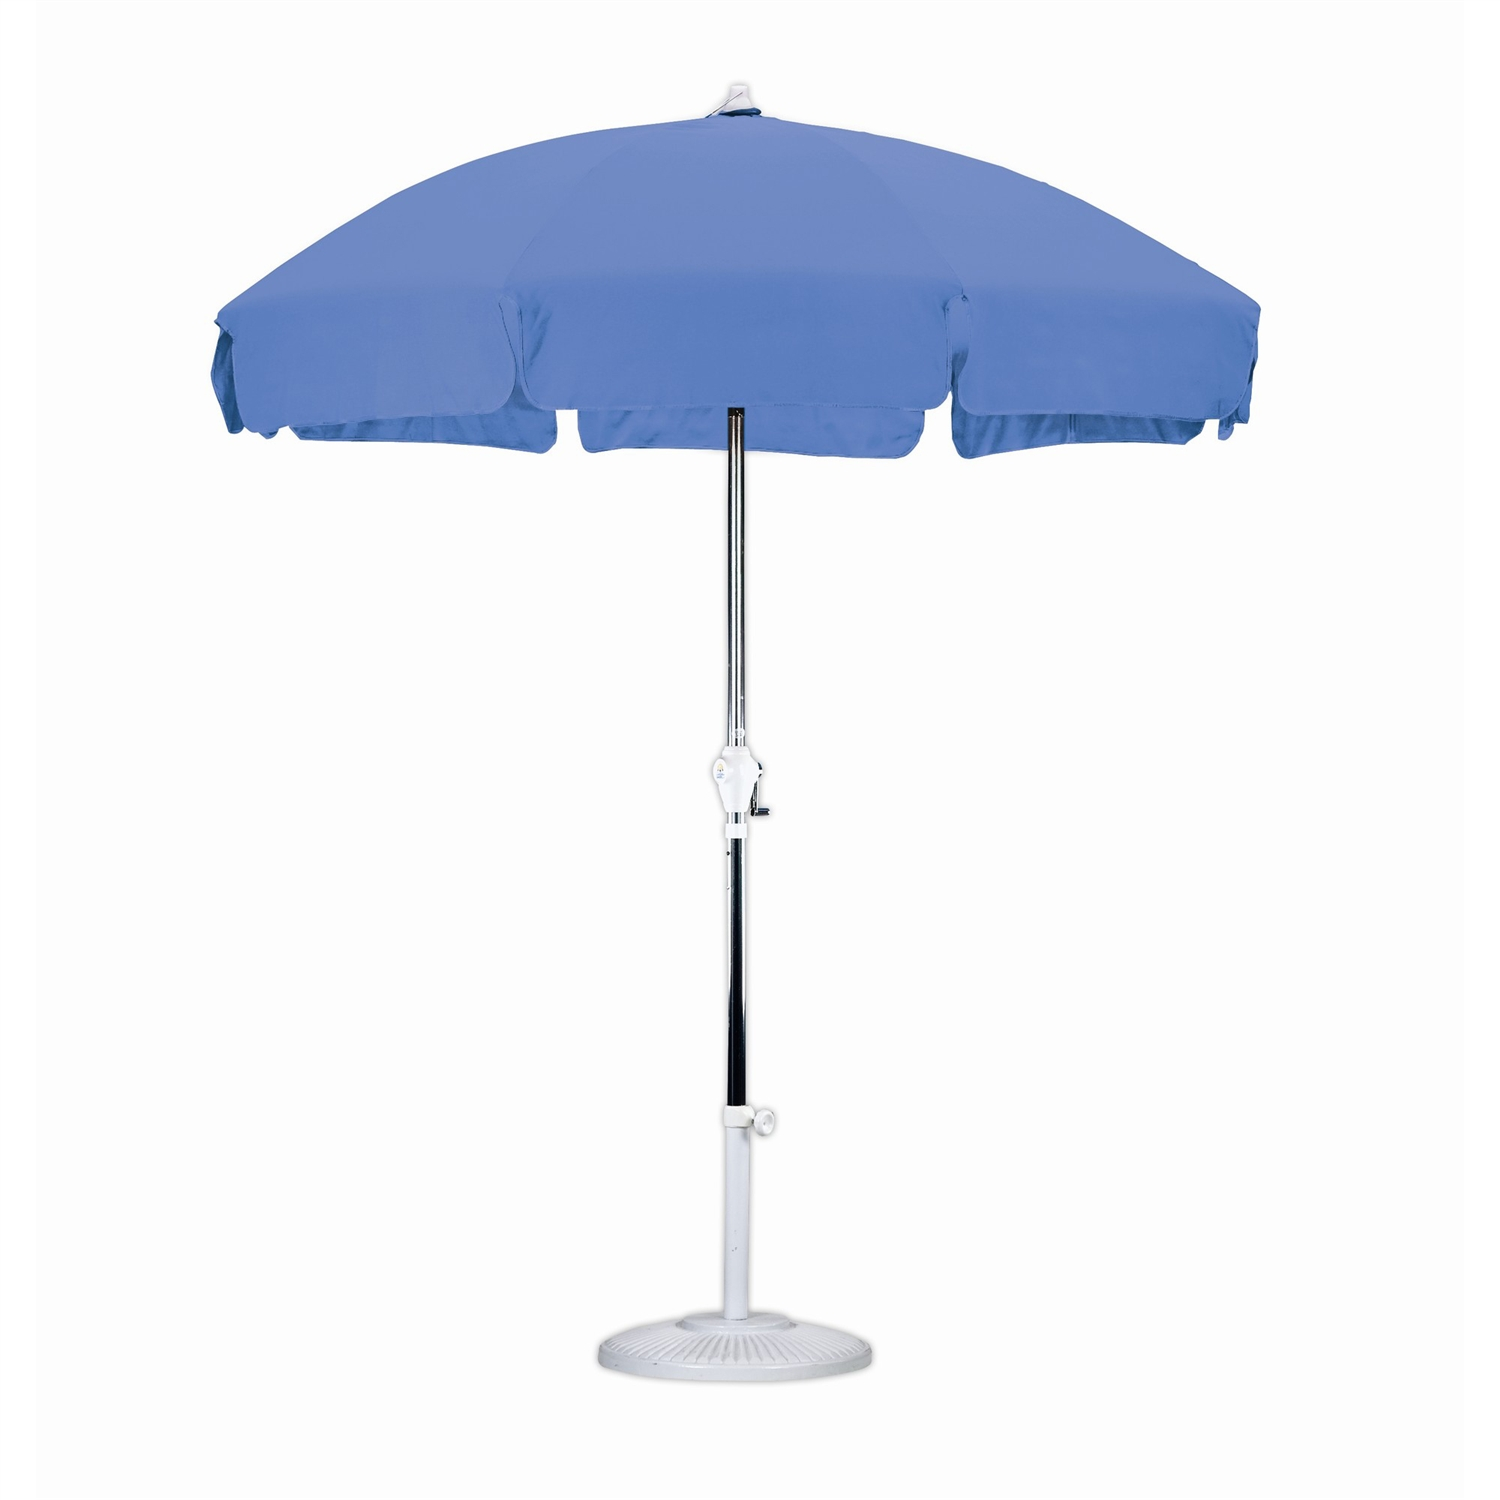 7.5 Foot Patio Umbrella with Push Button Tilt in Royal Blue Olefin, CU75P5799 :  The 7.5 Foot classic Patio style Umbrella is perfect way to shade yourself from the sun on your patio home or garden. Steel wire Ribs complete a perfect patio style canopy, and the simple Crank open aluminum frame make this vintage design easy to use, it even includes a Push button Tilt feature. Royal Blue Olefin Fabric color looks great in any space. Aluminum center pole; 8 Steel wire ribs; 7.5' Patio style canopy; Push button tilt; Easy open crank mechanism; Canopy Fabric: Olefin; Canopy Color: Royal Blue; Canopy Shap: Round.